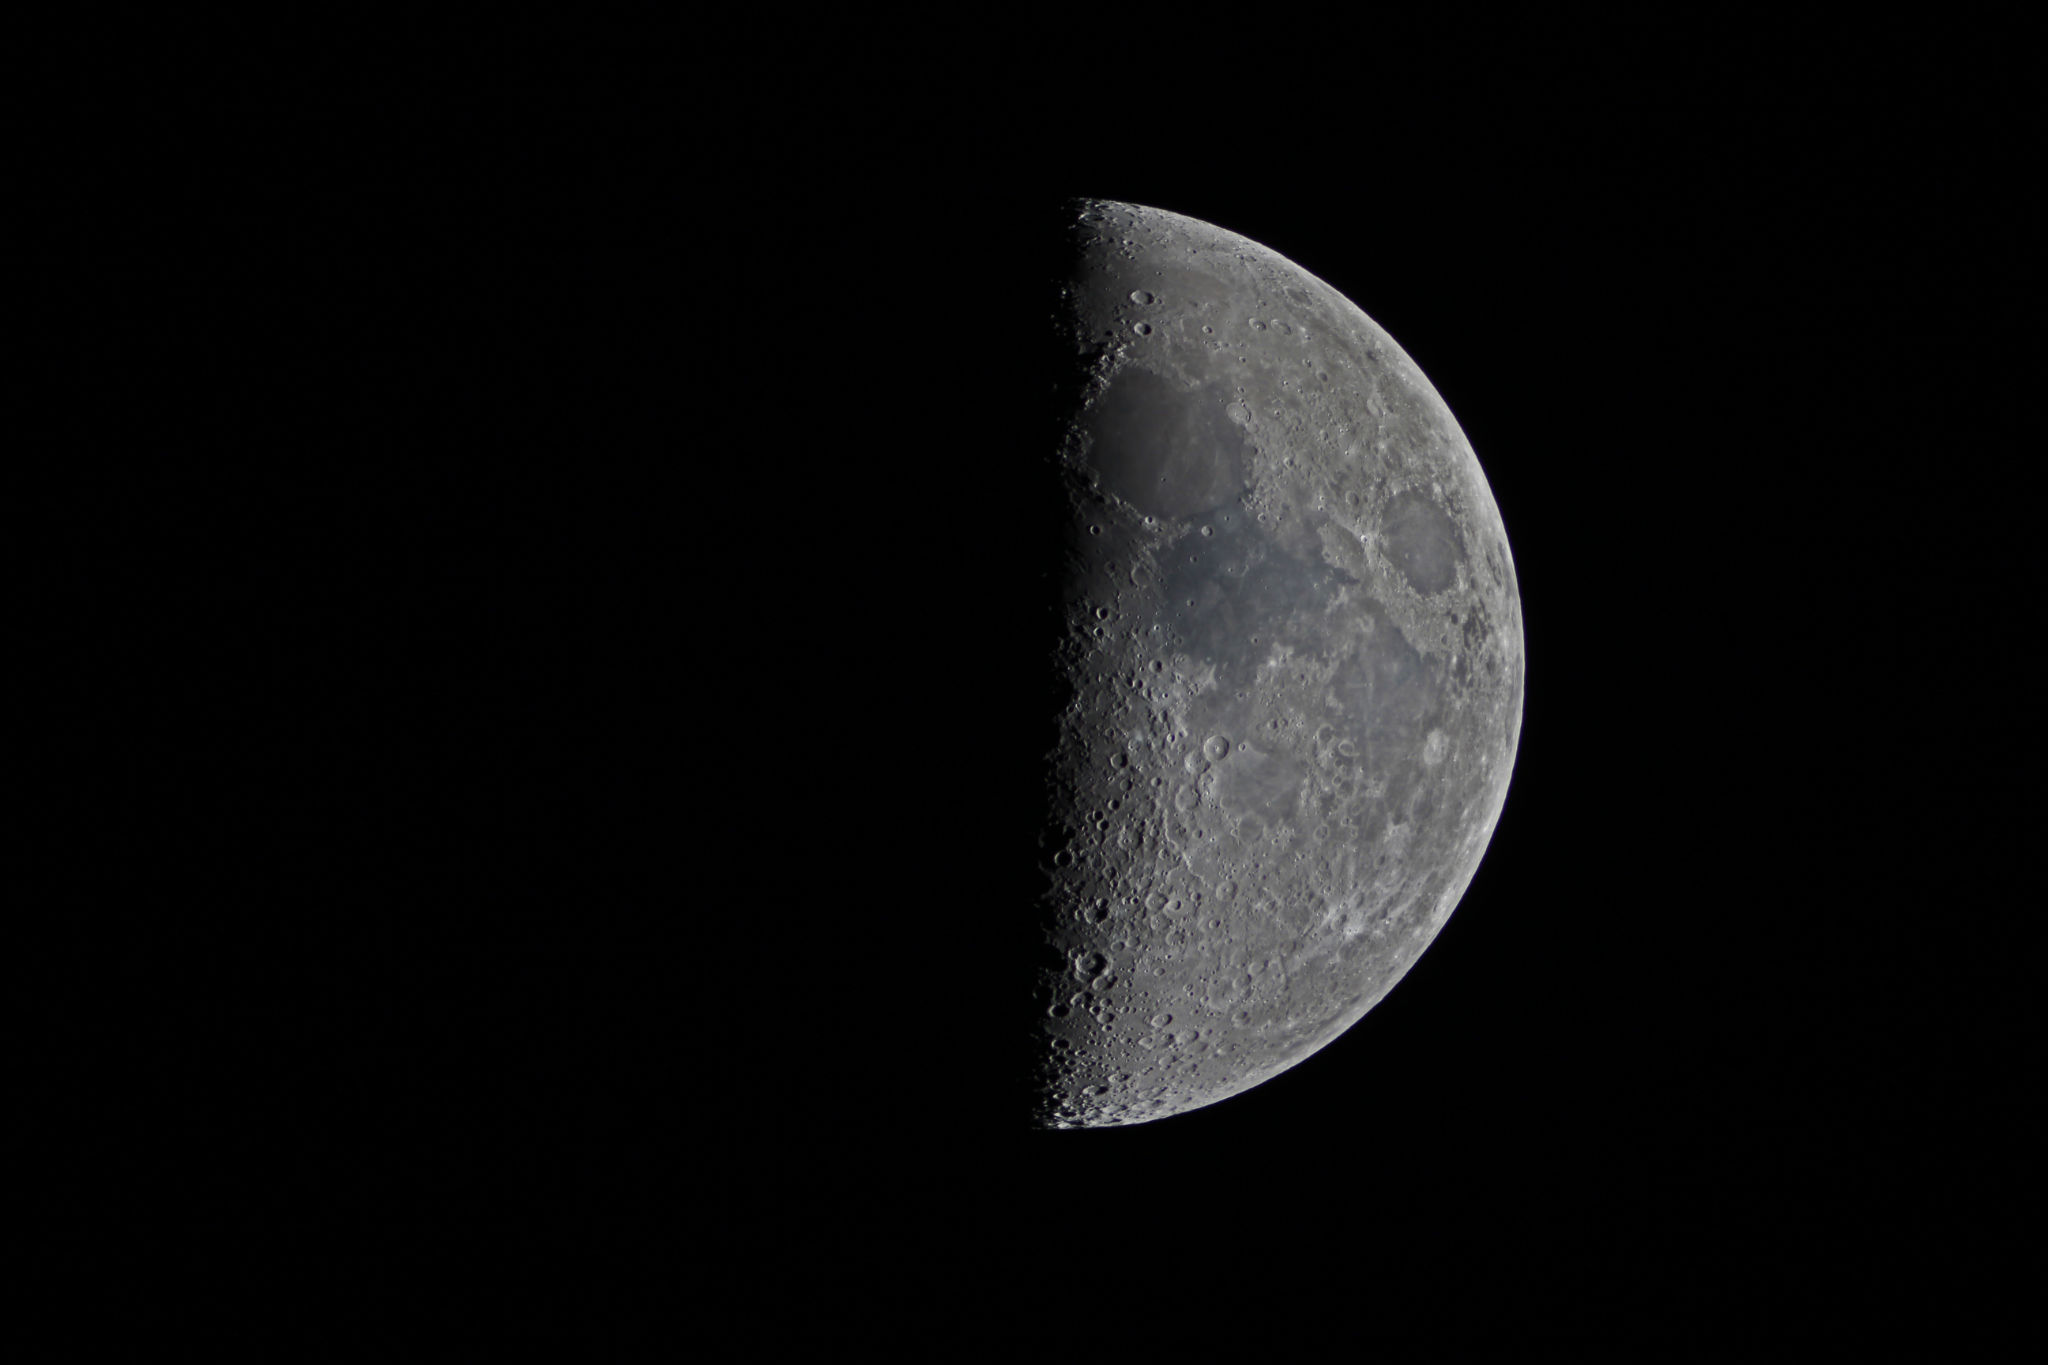 Stargazer Captures Spectacular View of First Quarter Moon (Photo)